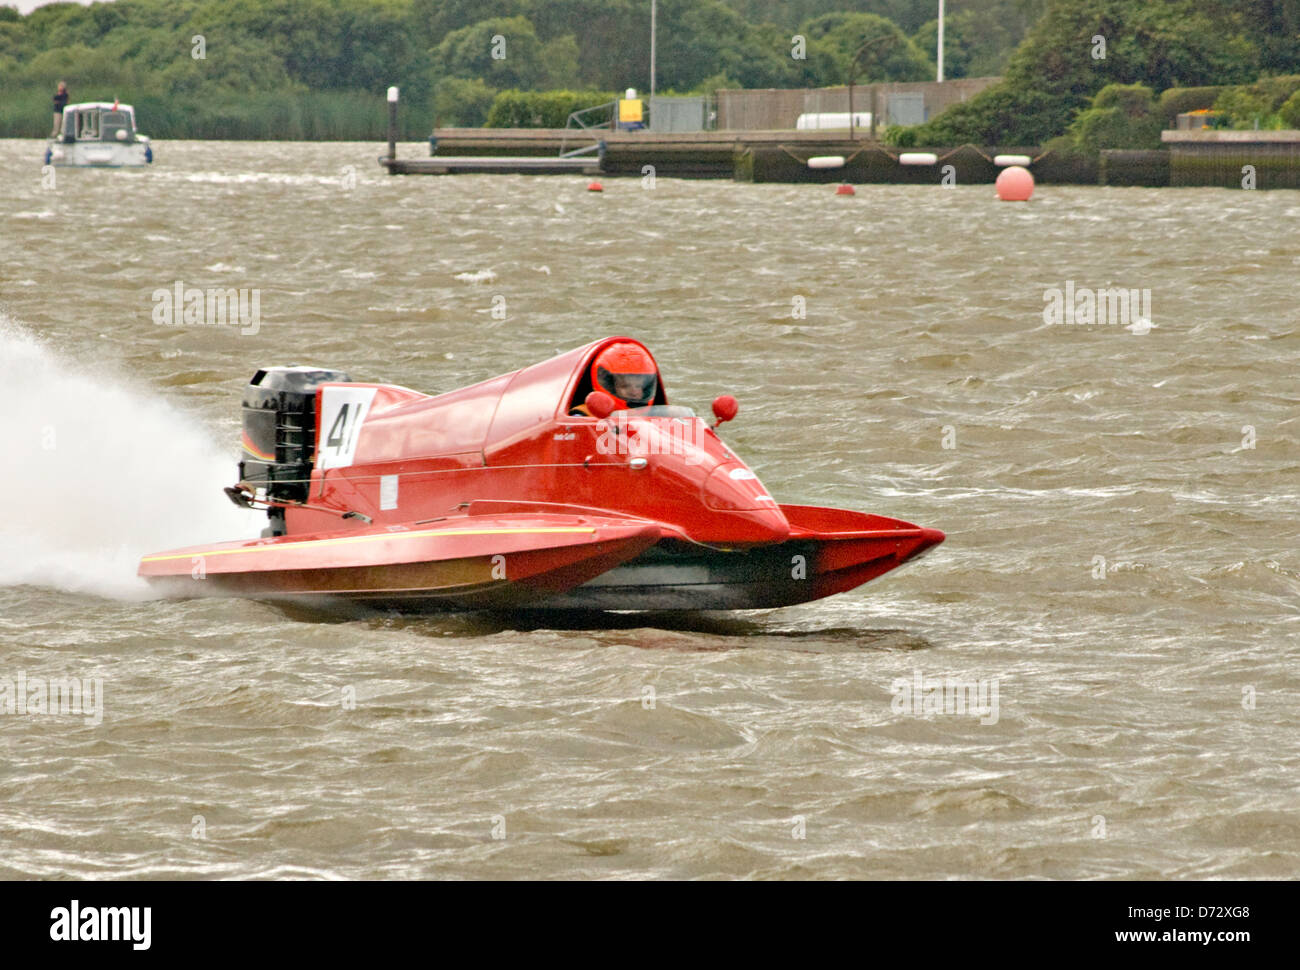 Red racing boat, speeding along on lake, water spray coming from back. Overcast sky. - Stock Image